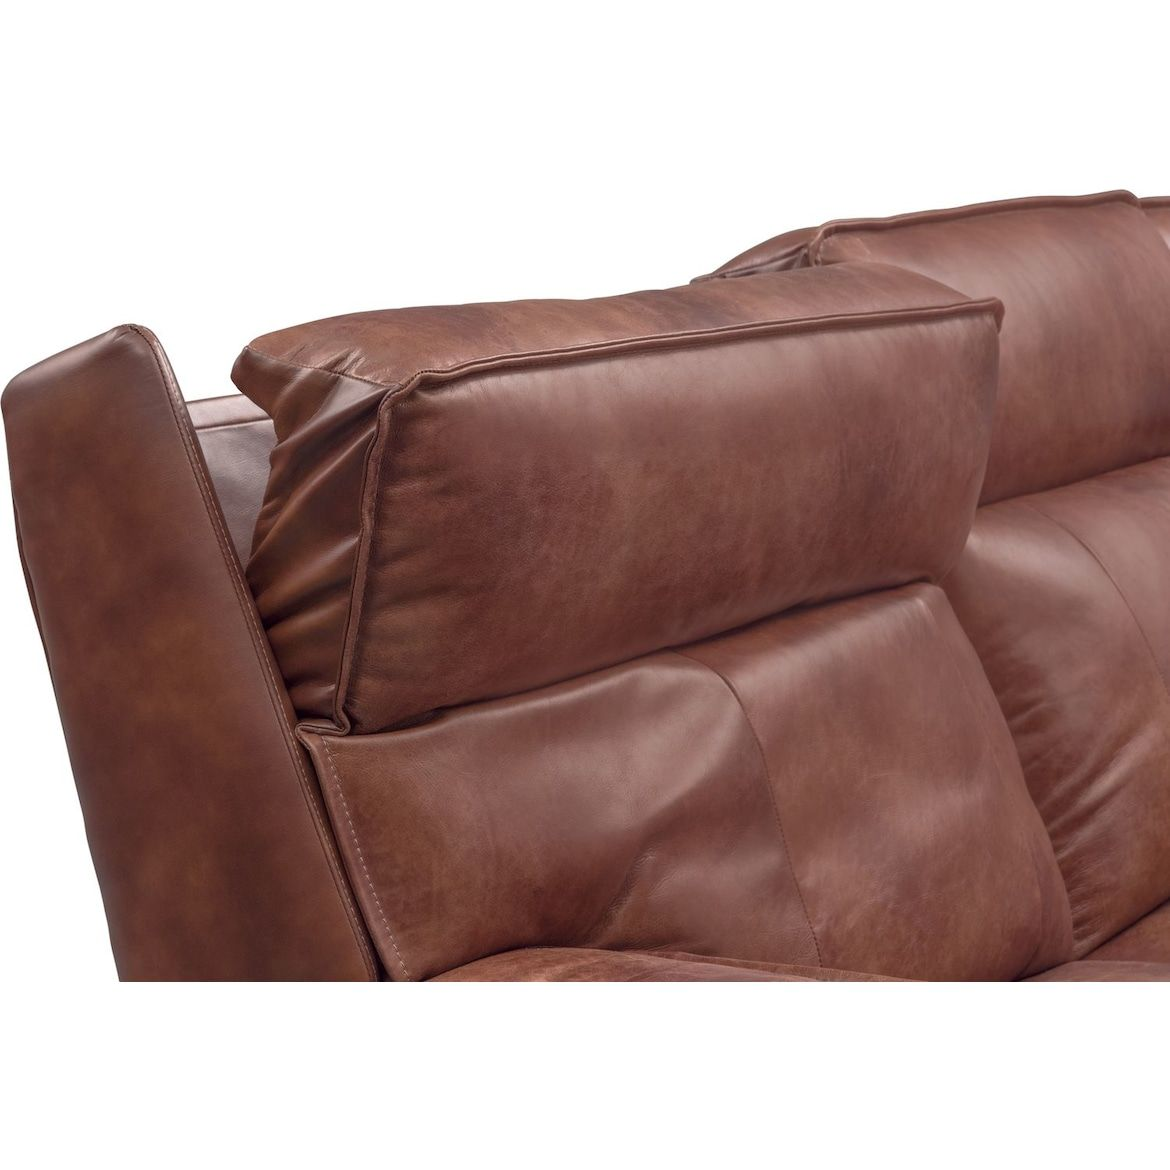 Bradley triple power reclining sofa reclining loveseat and recliner set value city furniture and